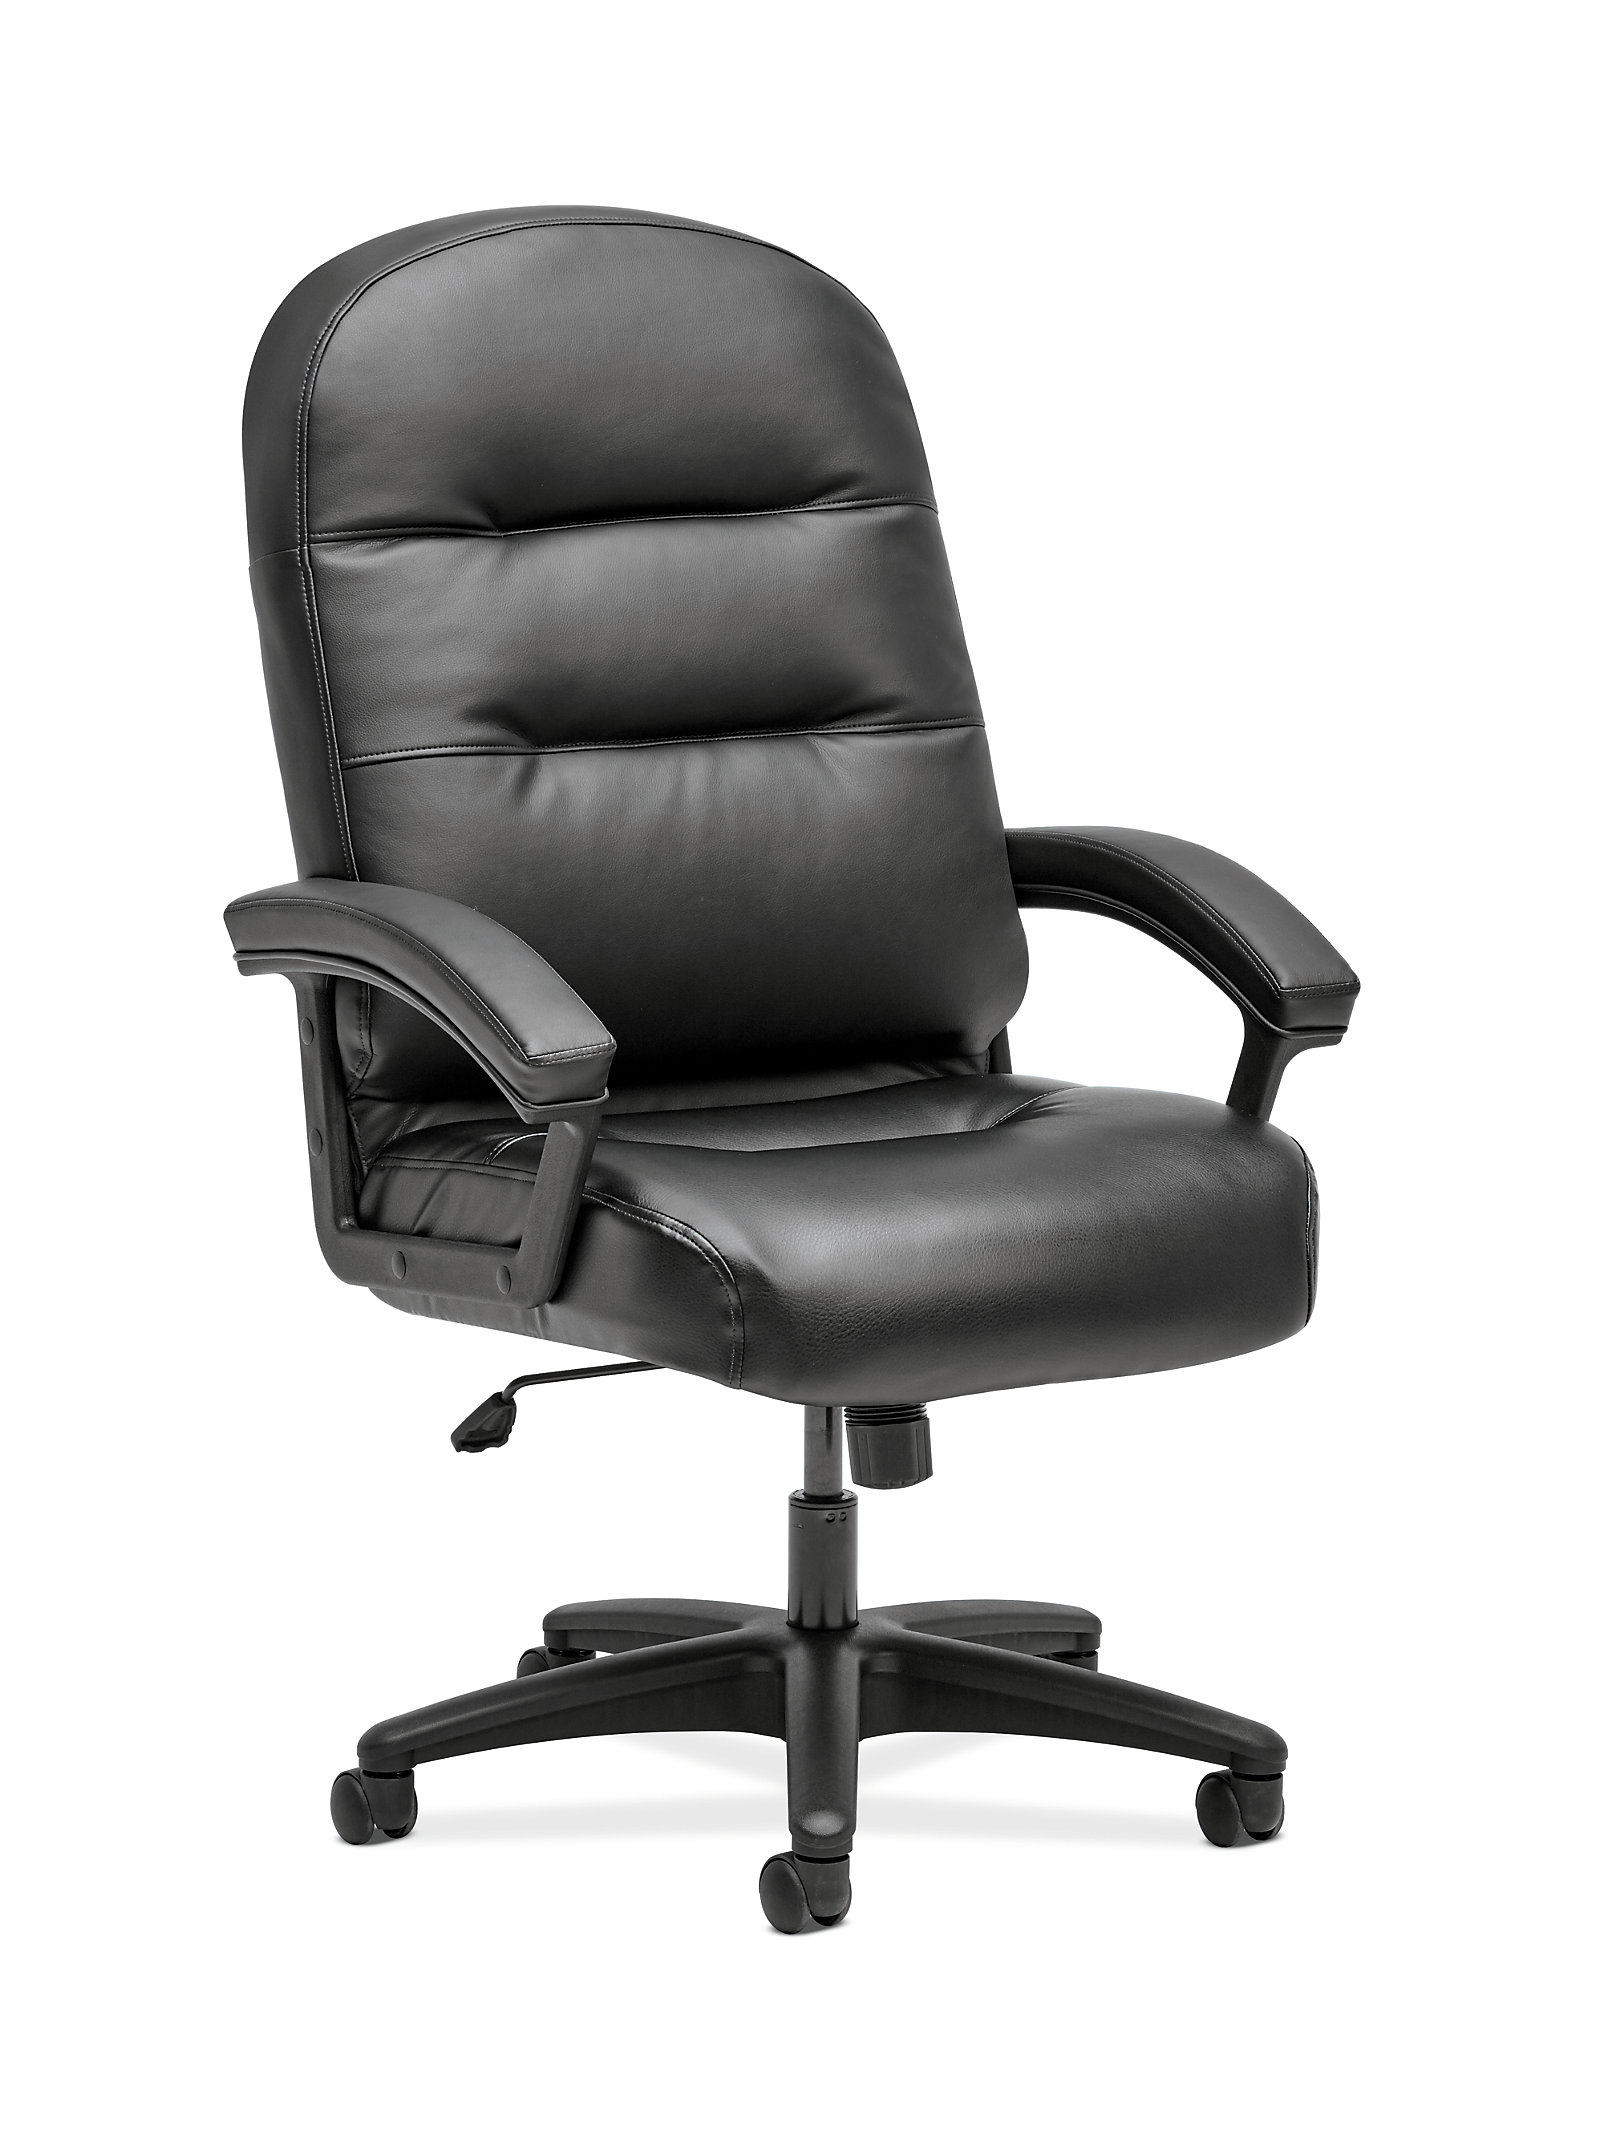 pillow soft executive high back chair h2095 hon office furniture